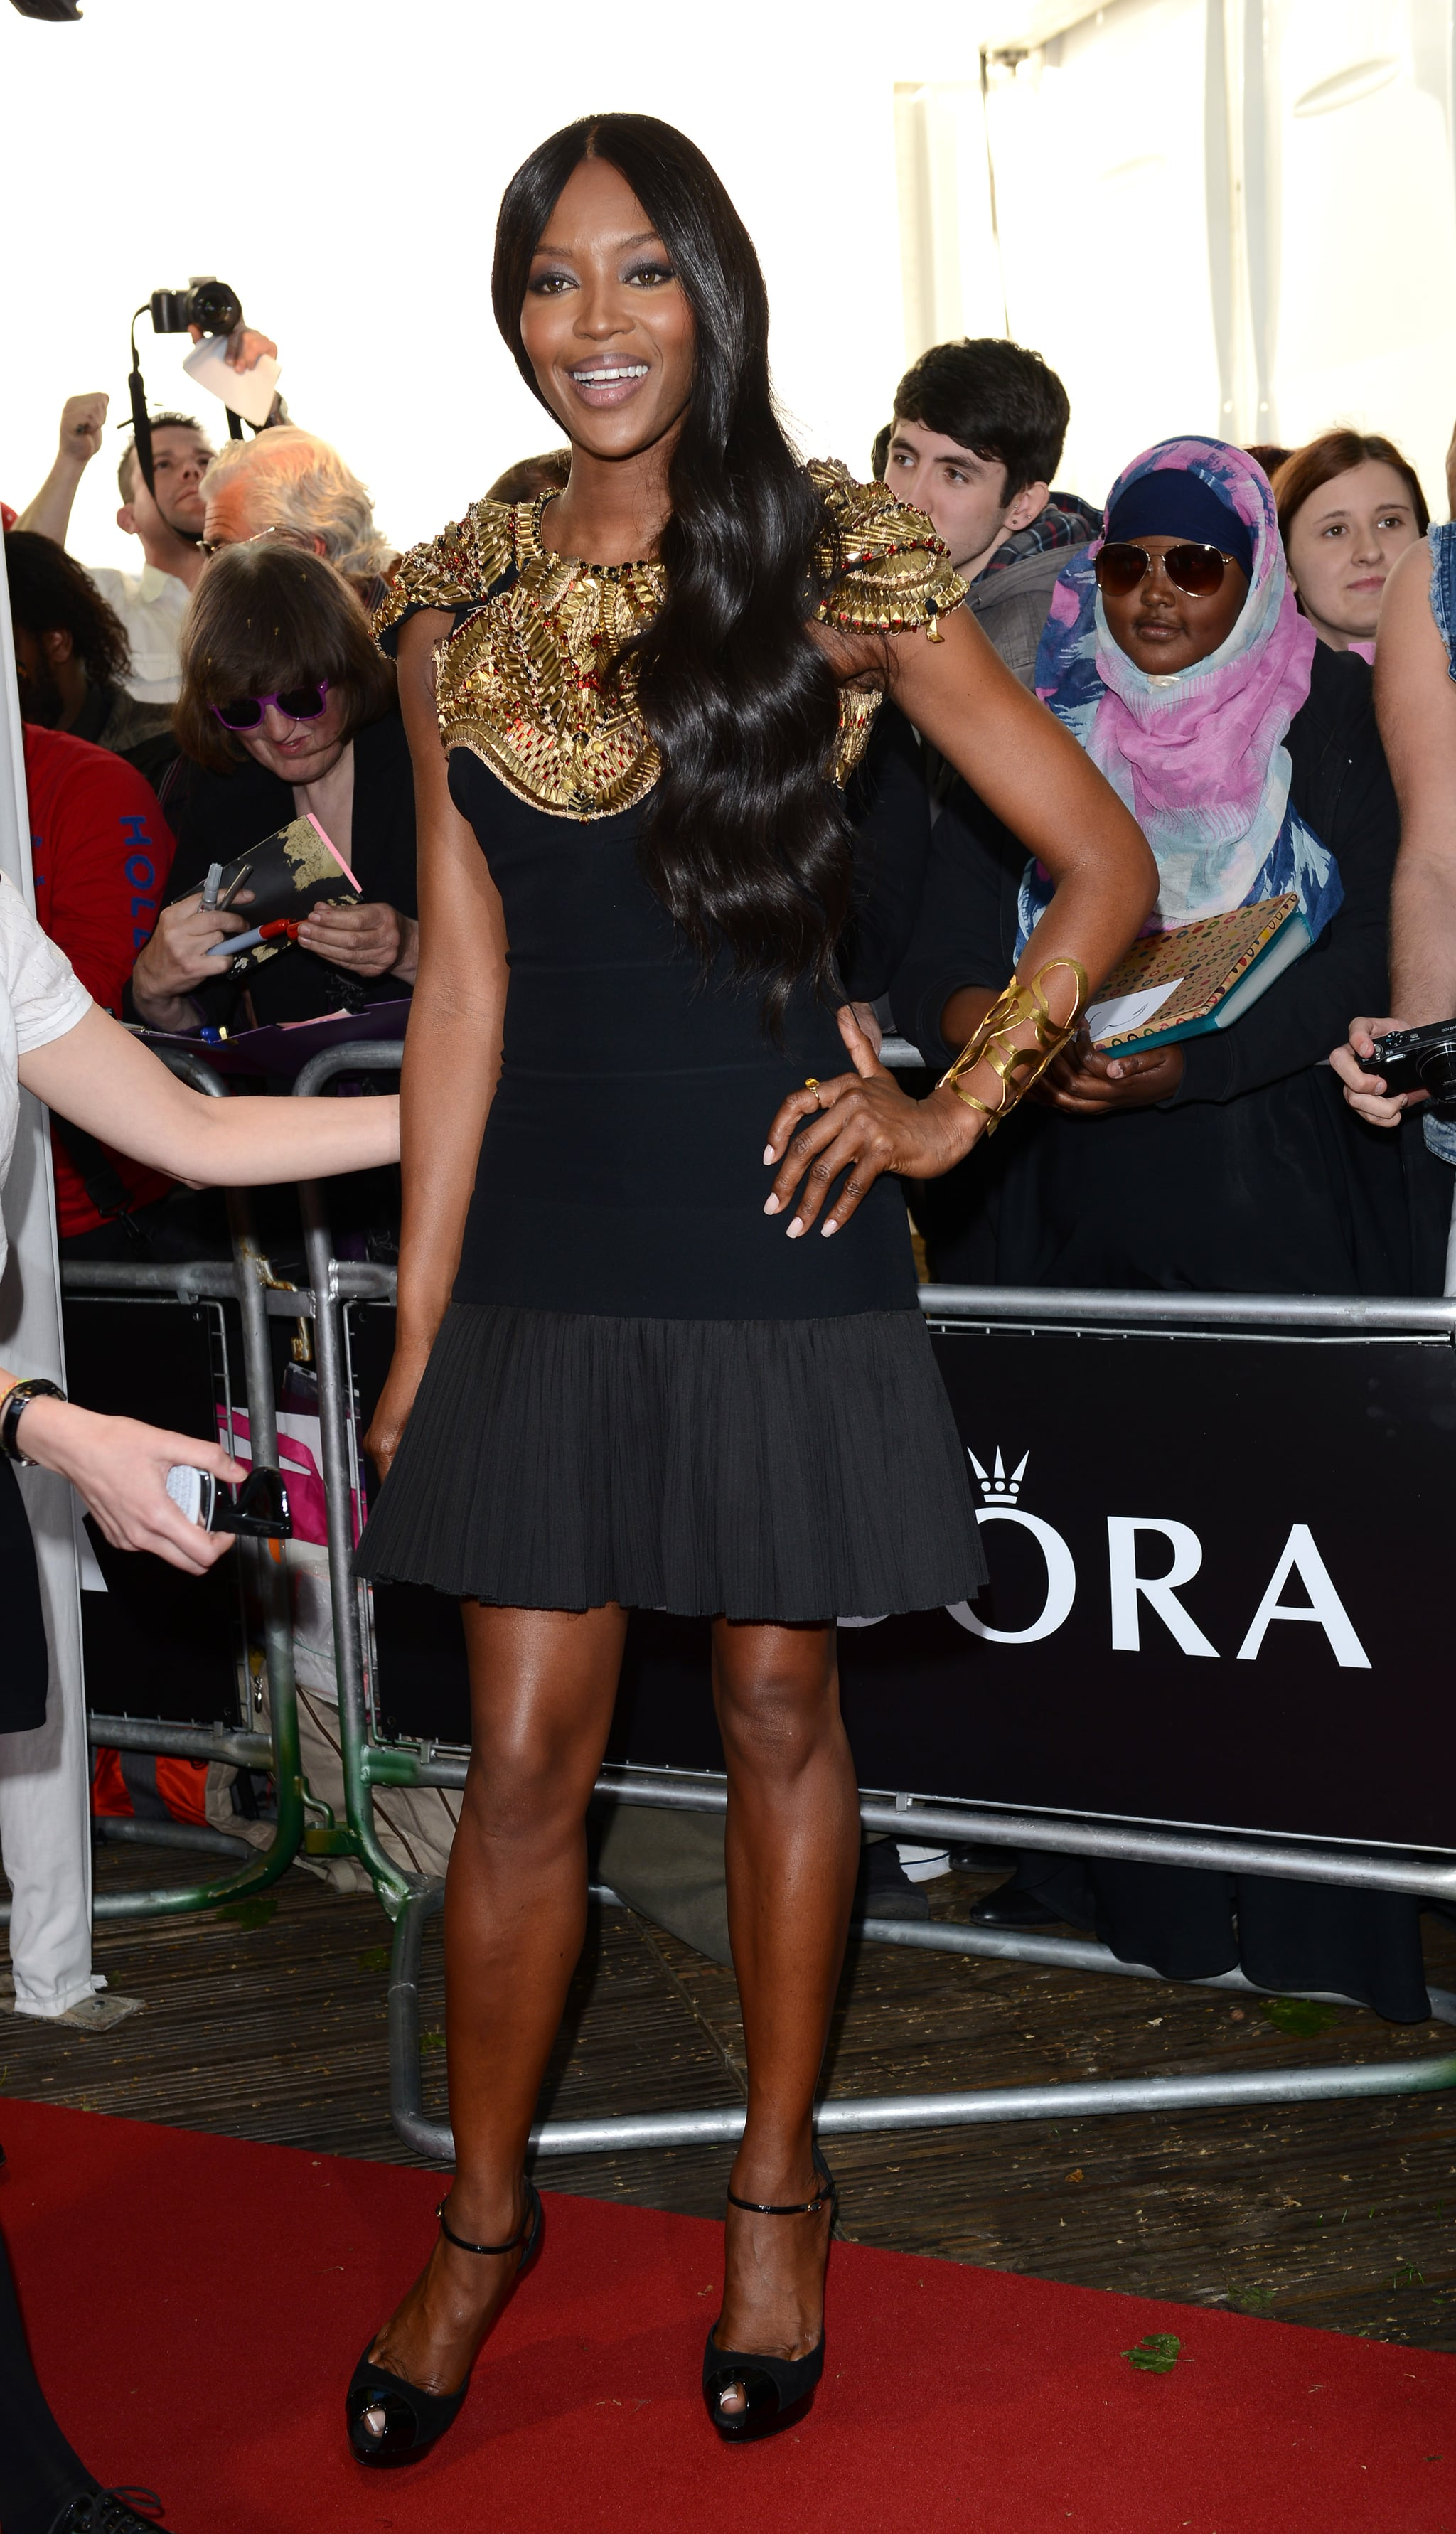 Naomi Campbell at the 2013 Glamour Women of the Year awards.